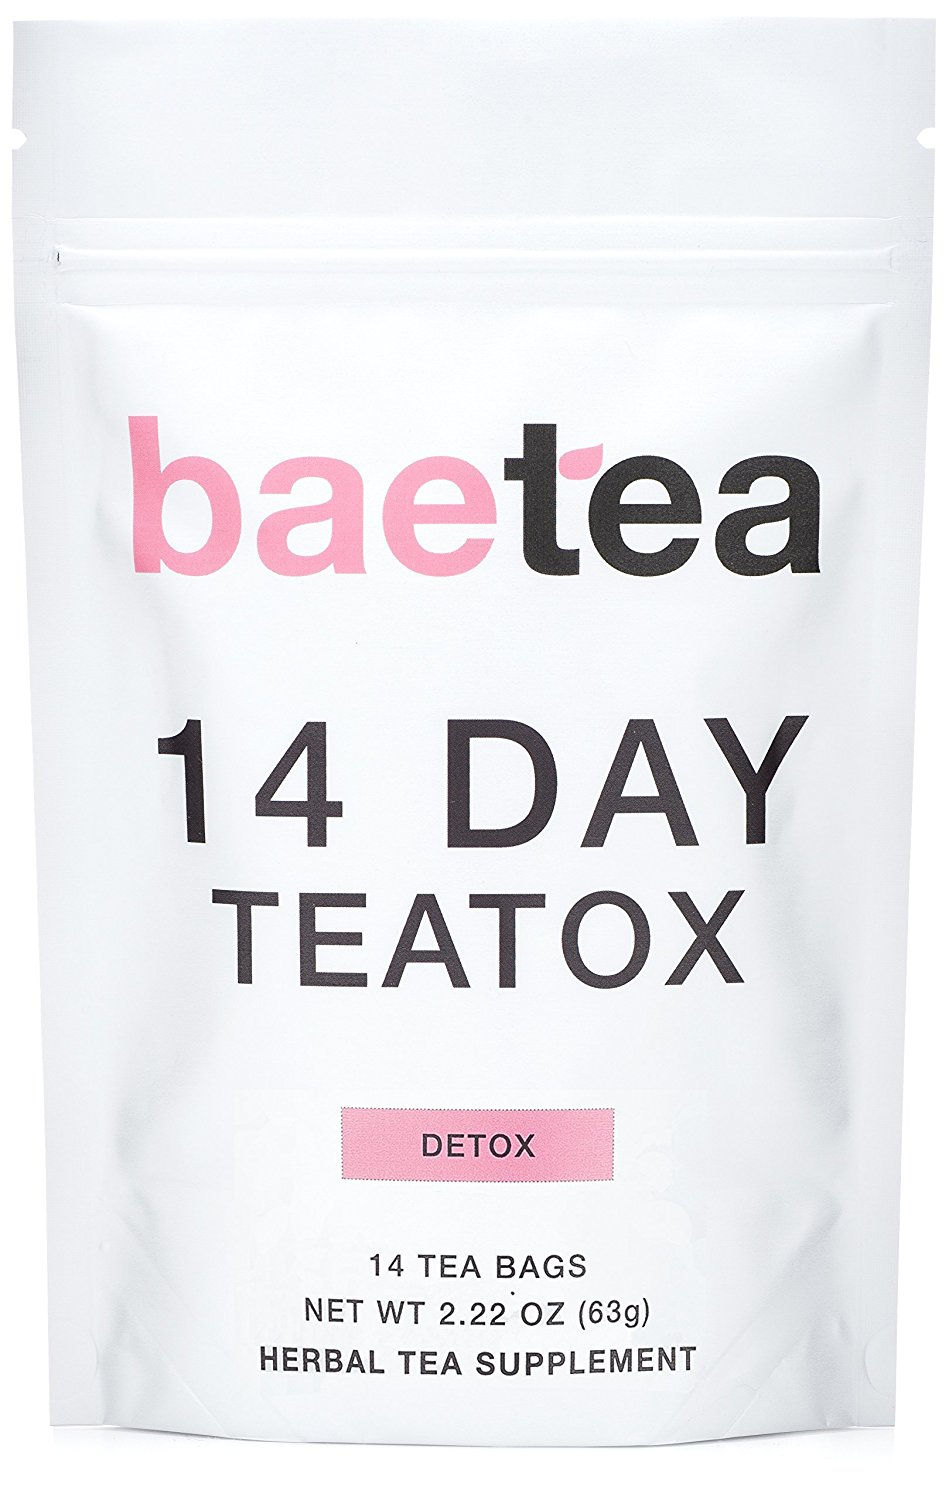 Baetea 14 Day Teatox Detox Herbal Tea is the best herbal tea for weight loss